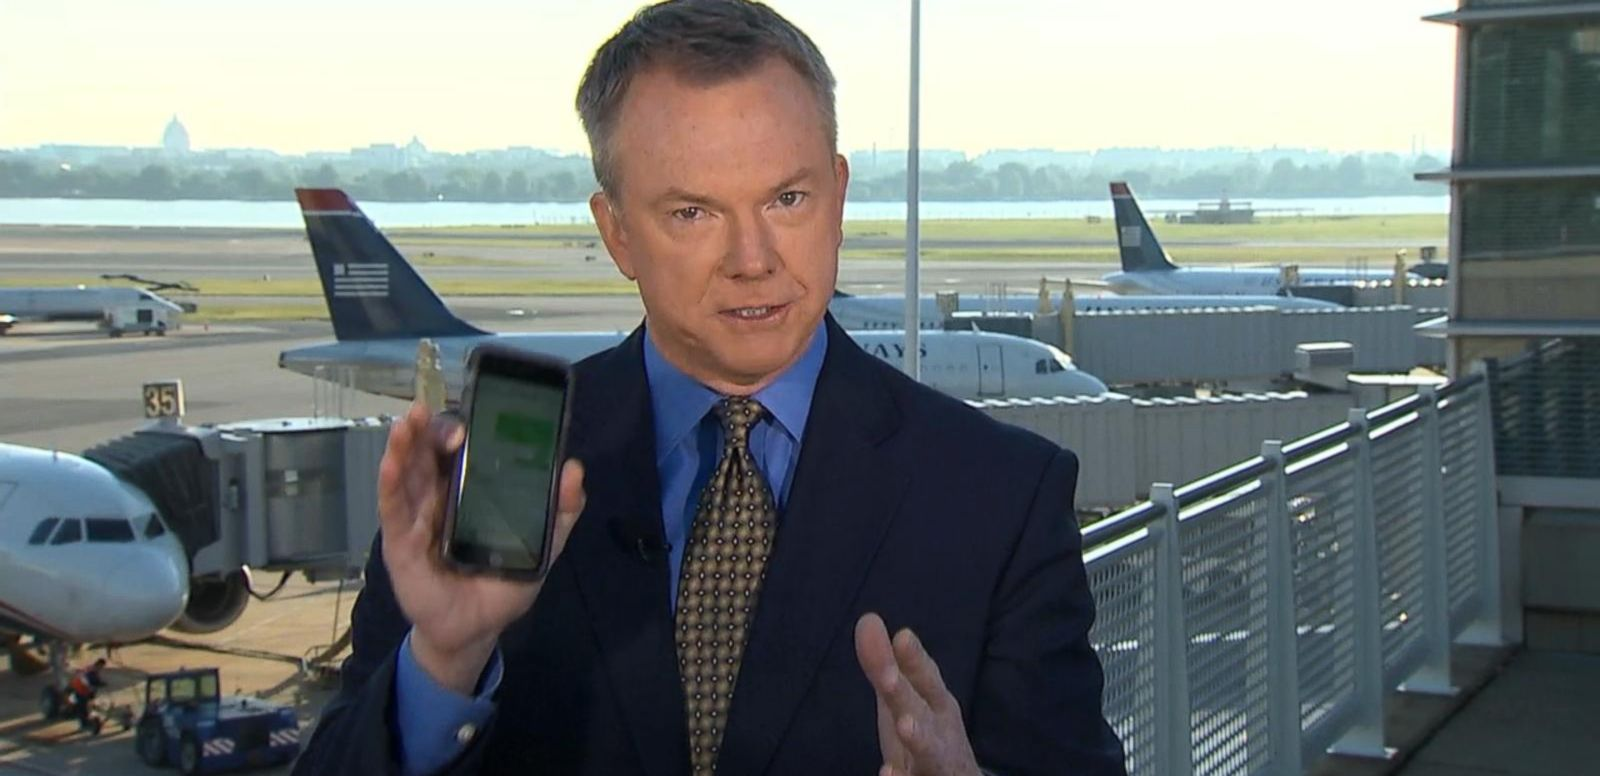 VIDEO: New Technology Could Help Reduce Airport Delays